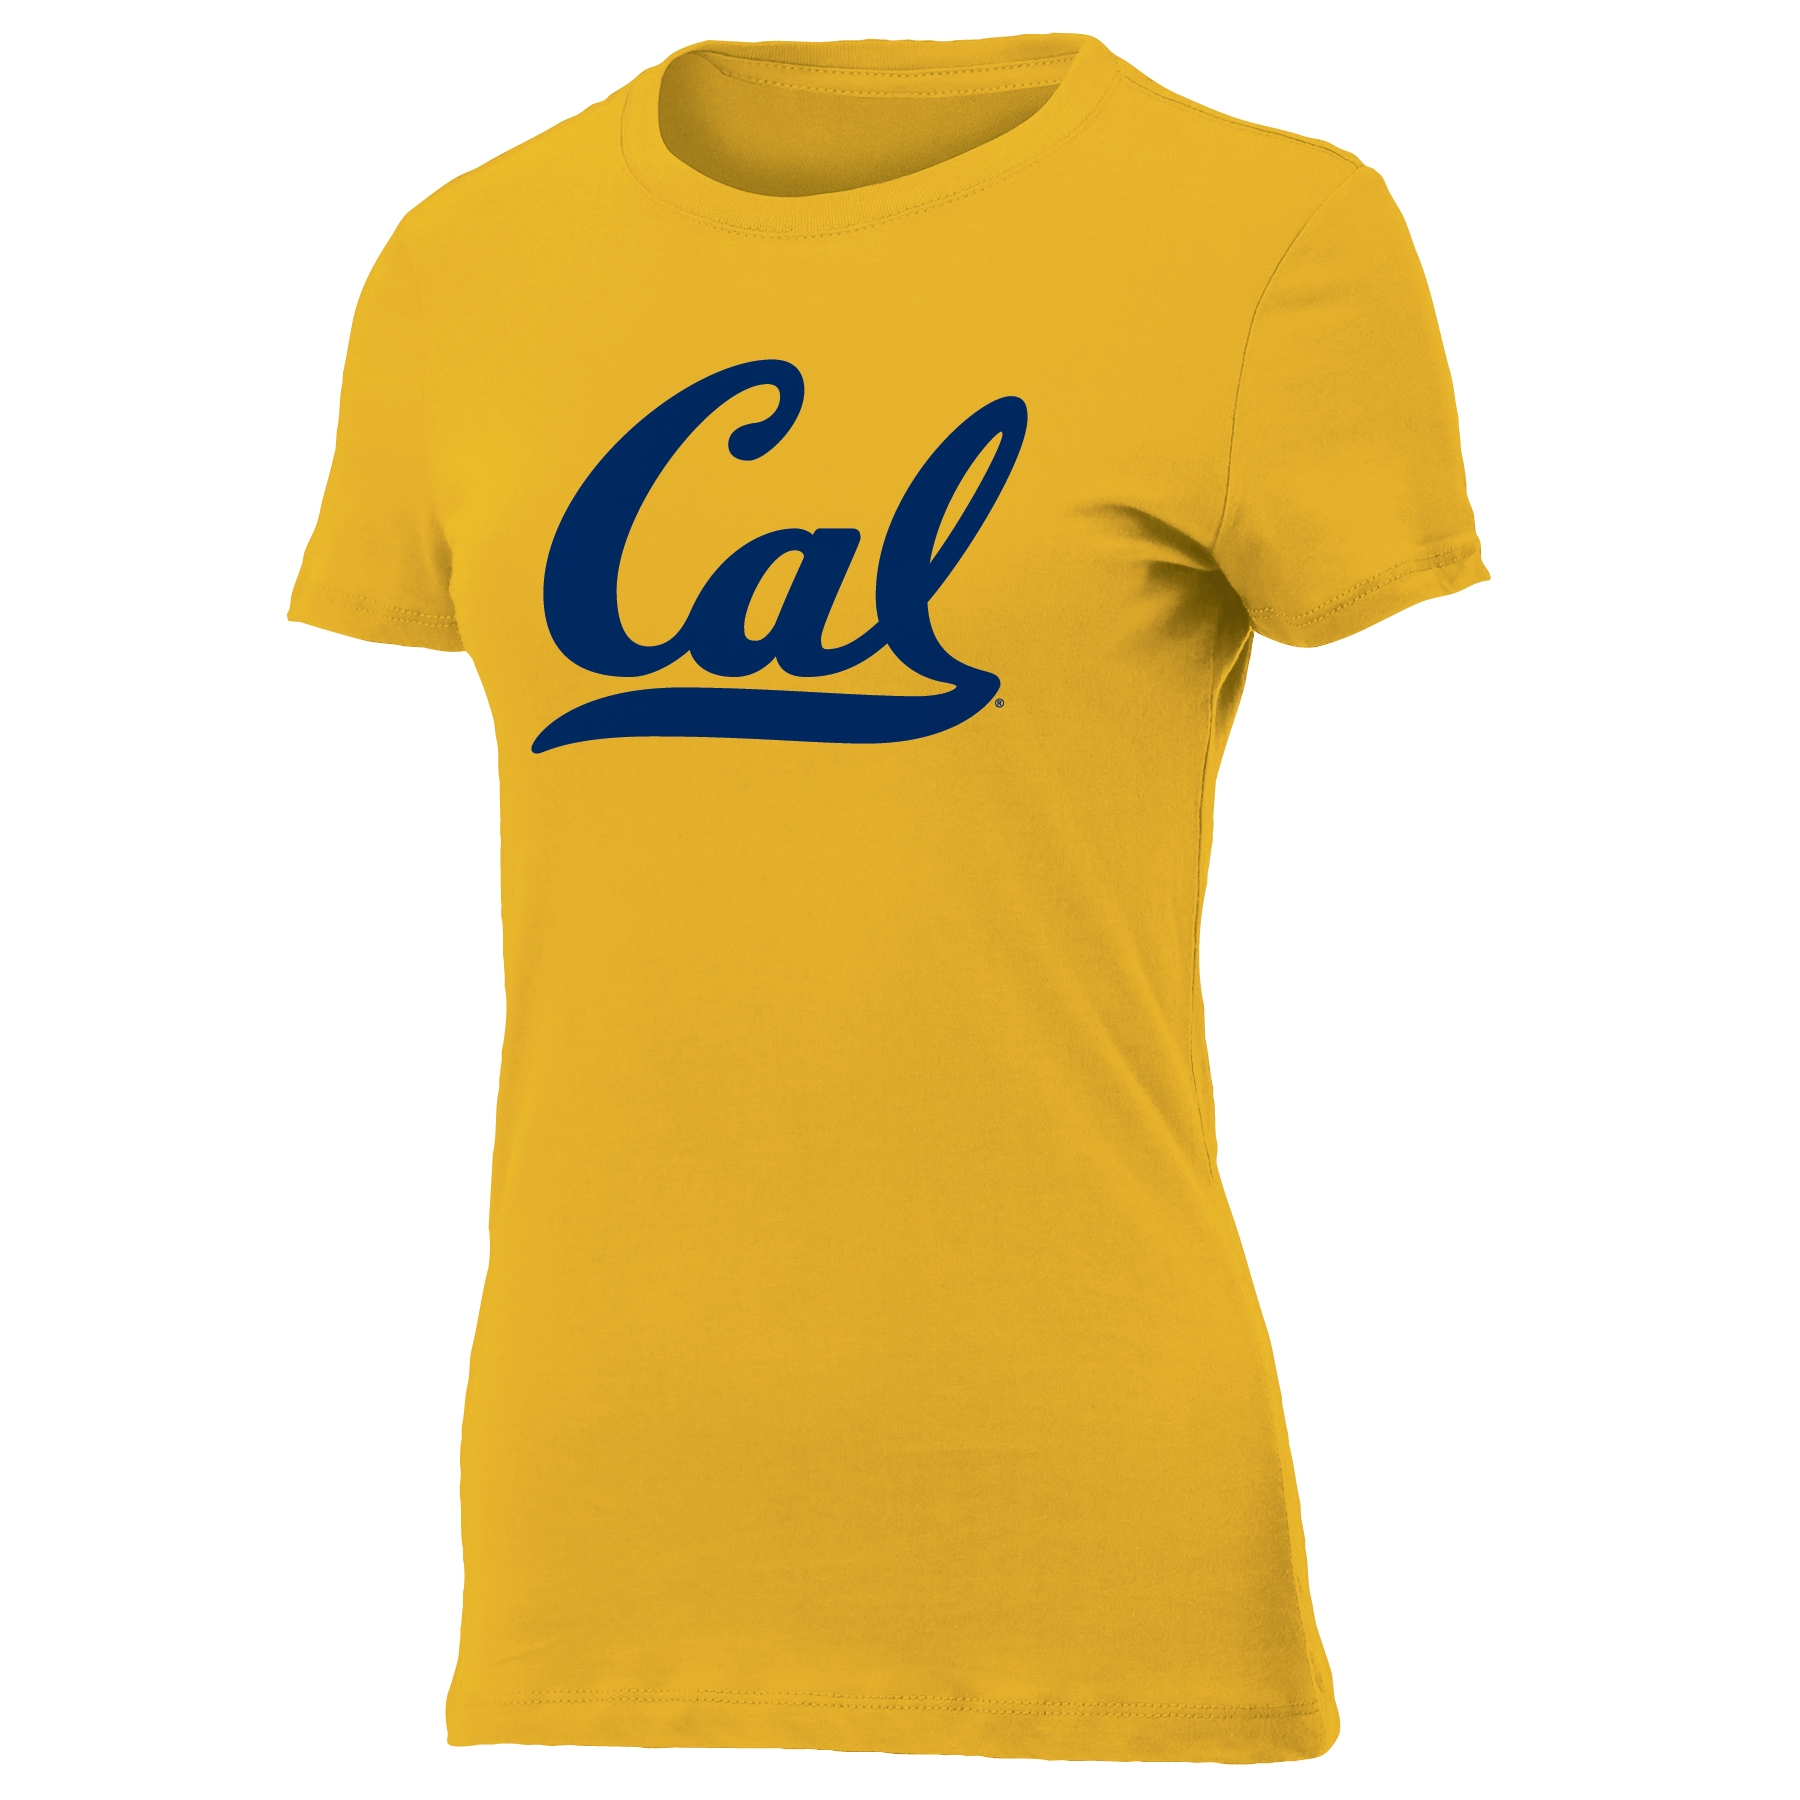 University of California Berkeley Women's Vintage Sheer Tee with Cal Logo